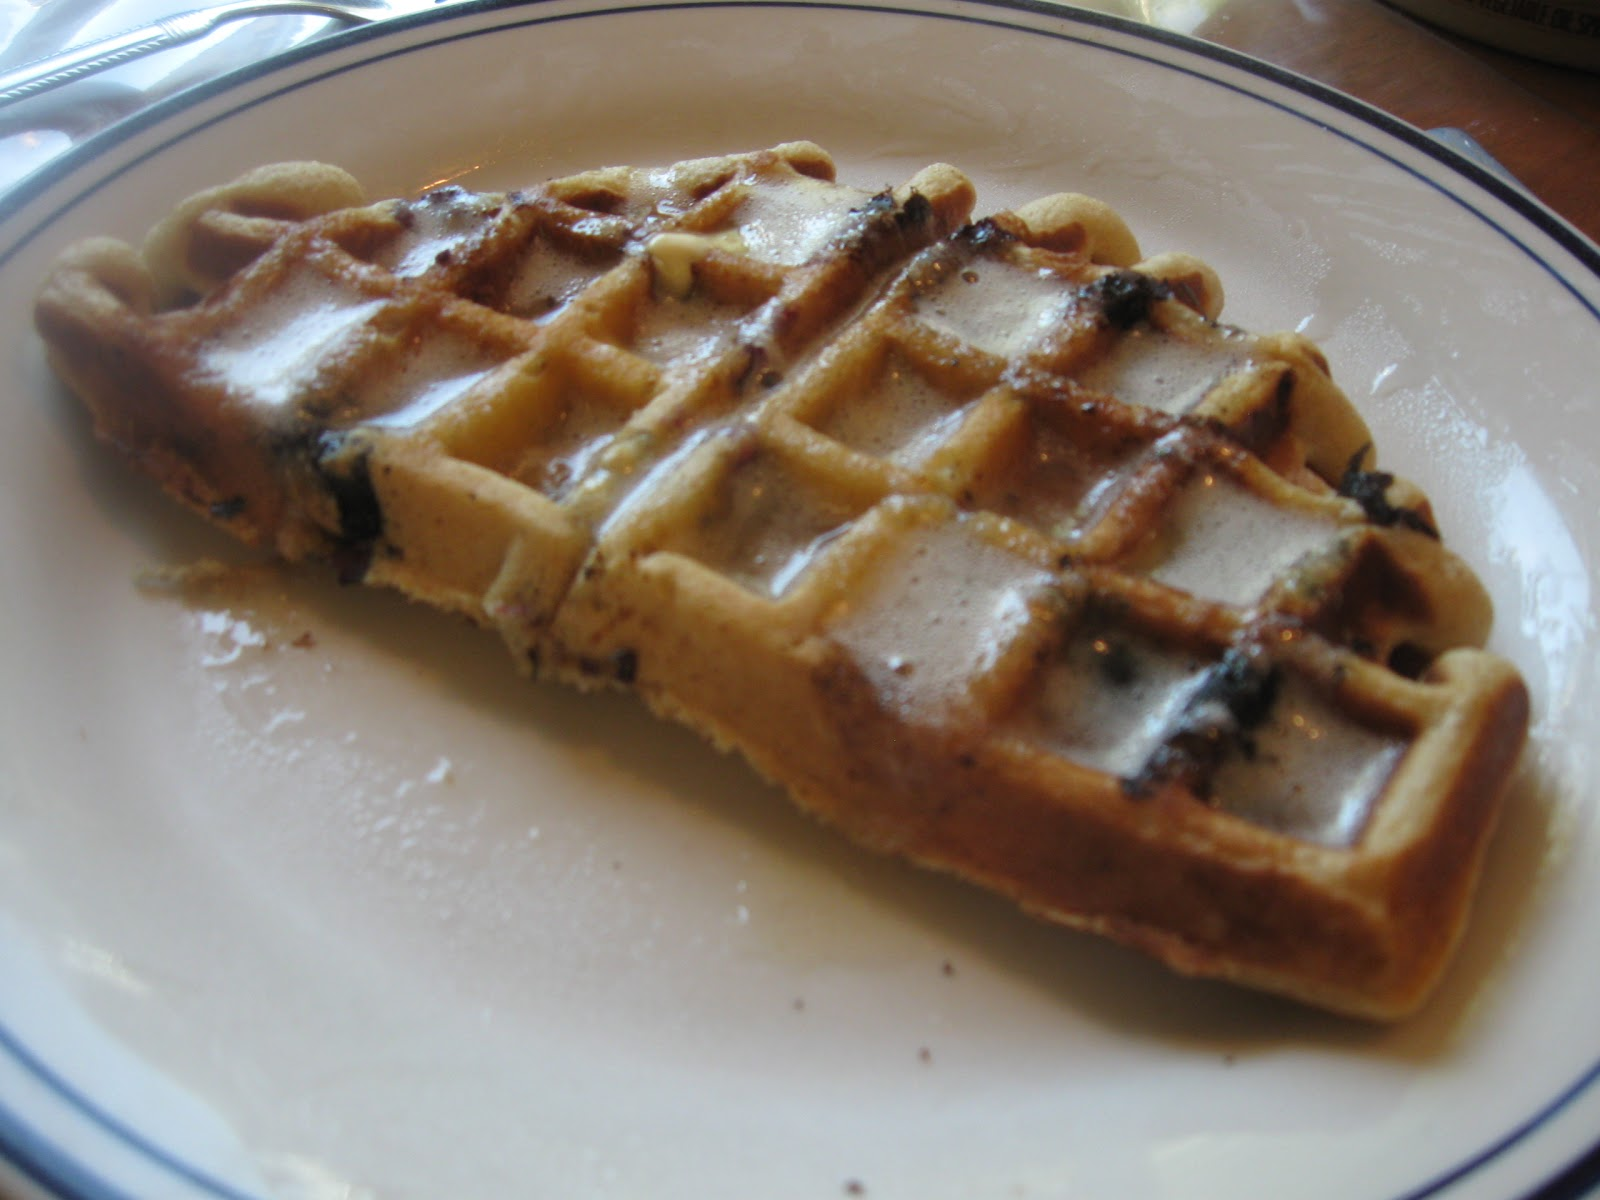 ... ' Sweet Tooth: Blueberry Buttermilk Waffles with Buttermilk Syrup